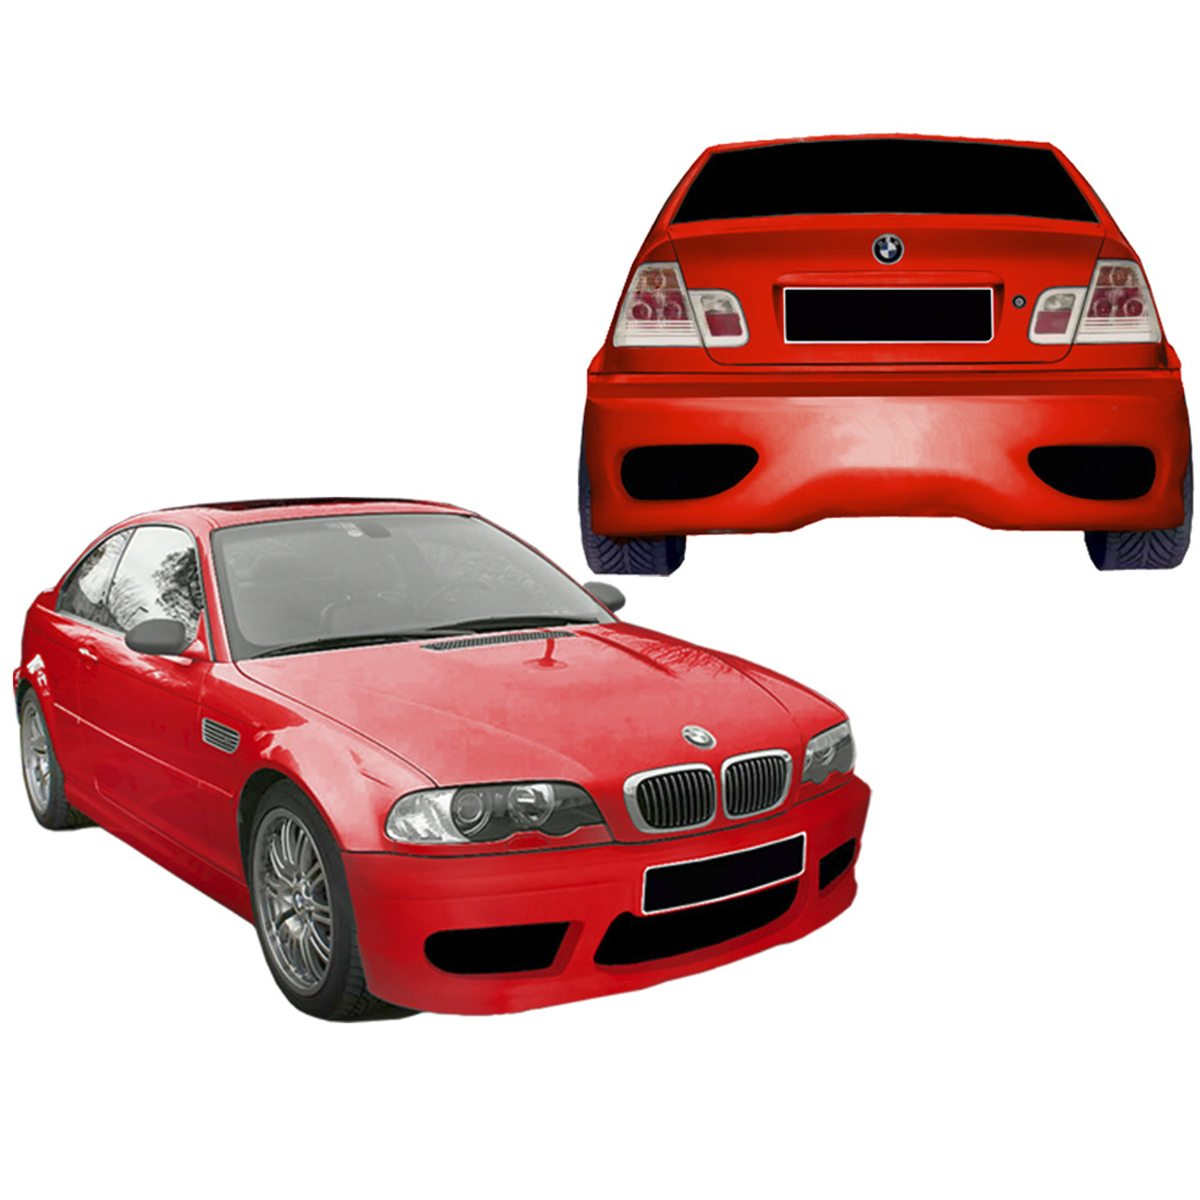 BMW-E46-Super-Sport-II-KIT-QTU087